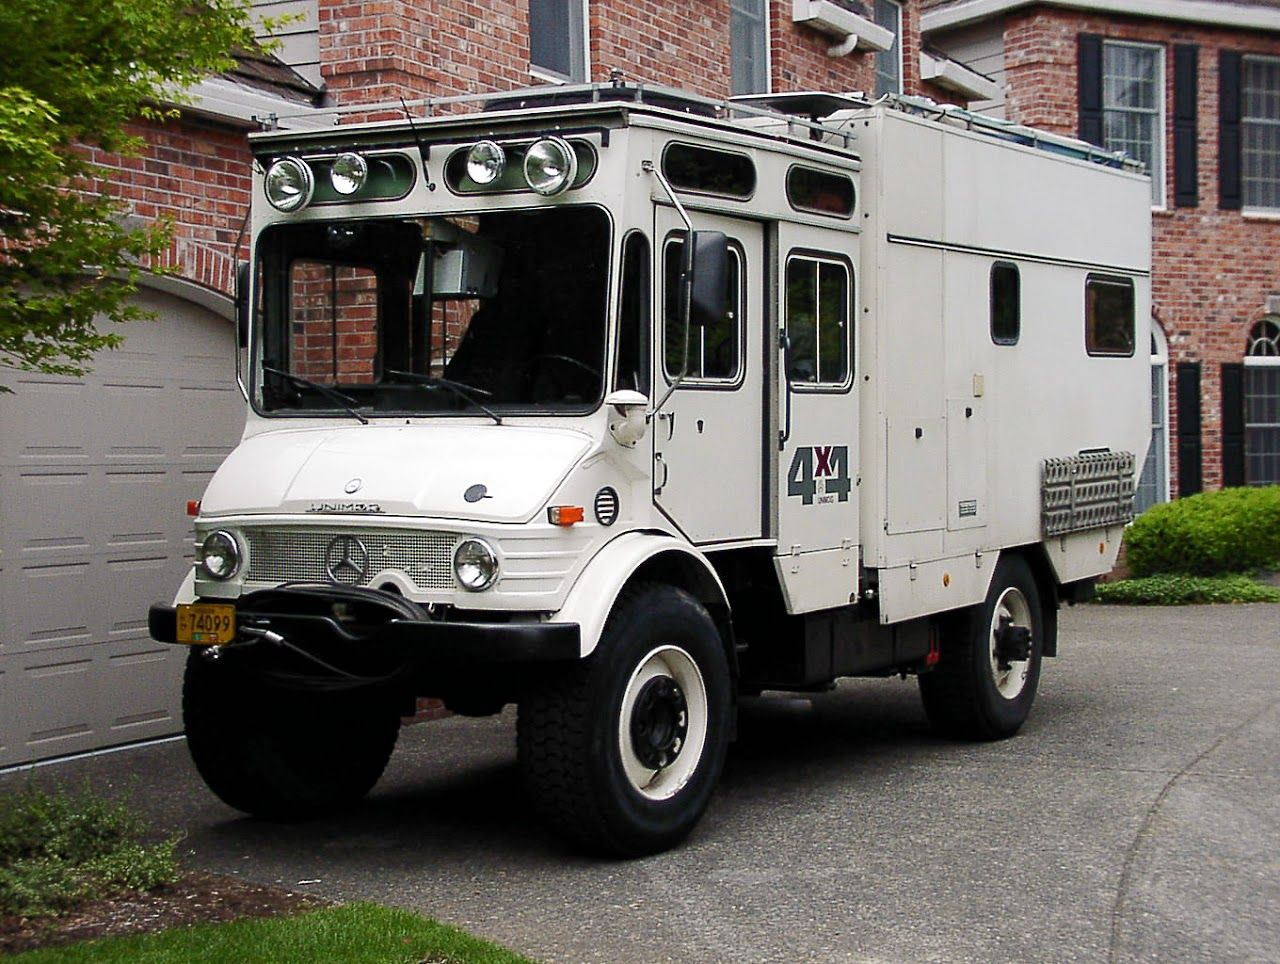 Unimog 416-based camper | Bugout | Pinterest | 4x4, Vehicle and Cars